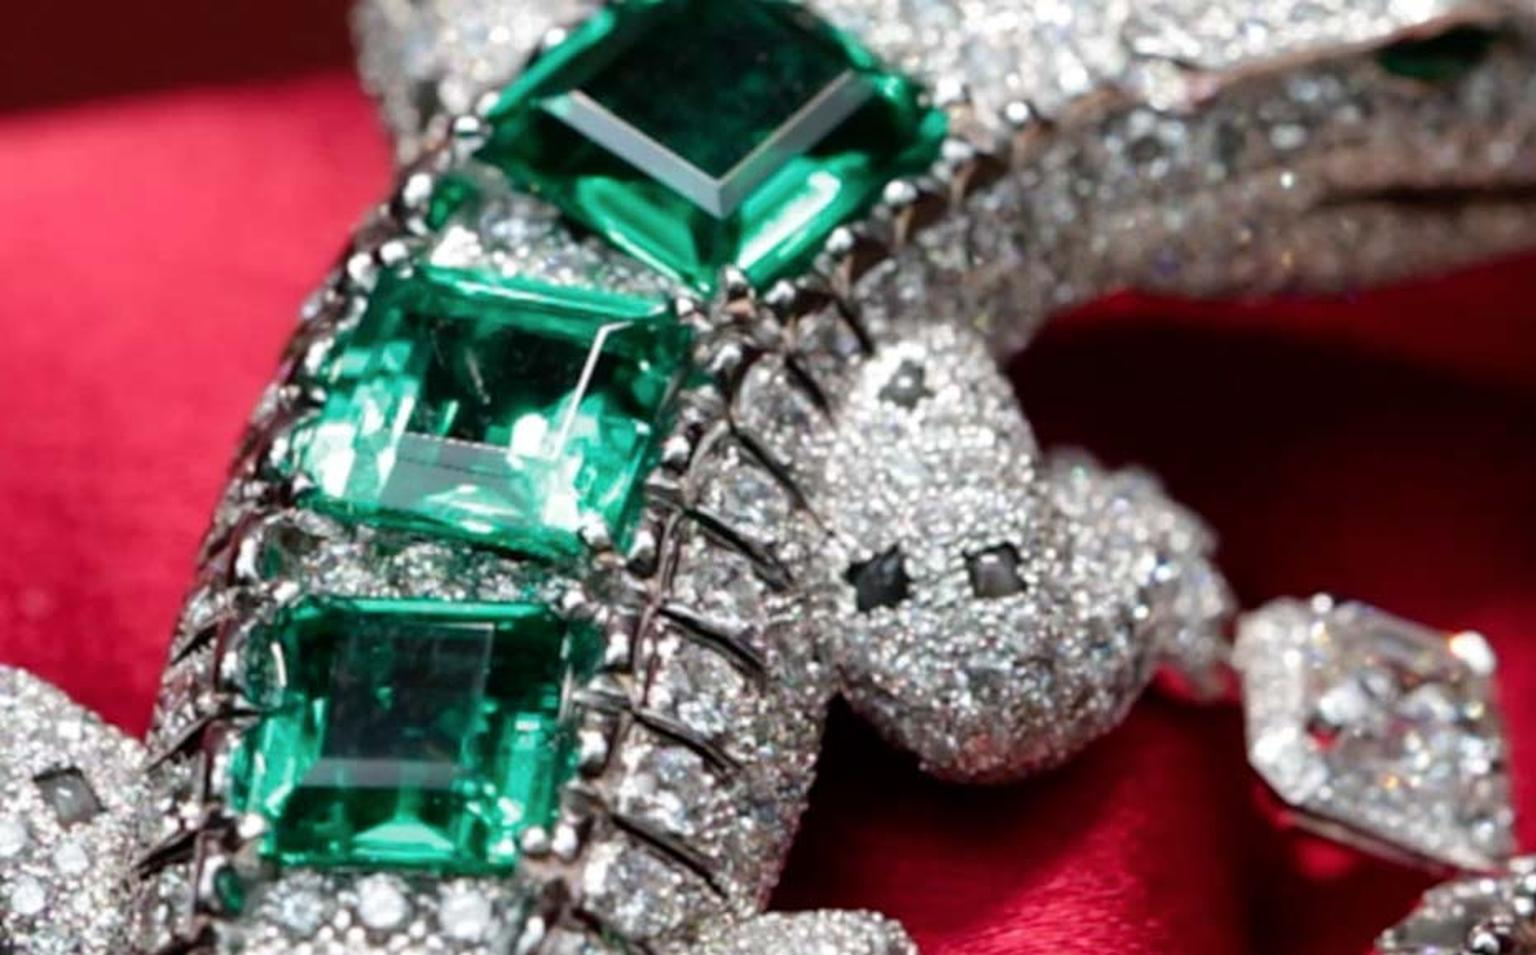 Cartier Alligator brooch with diamonds and emeralds from the new Royal high jewellery collection.